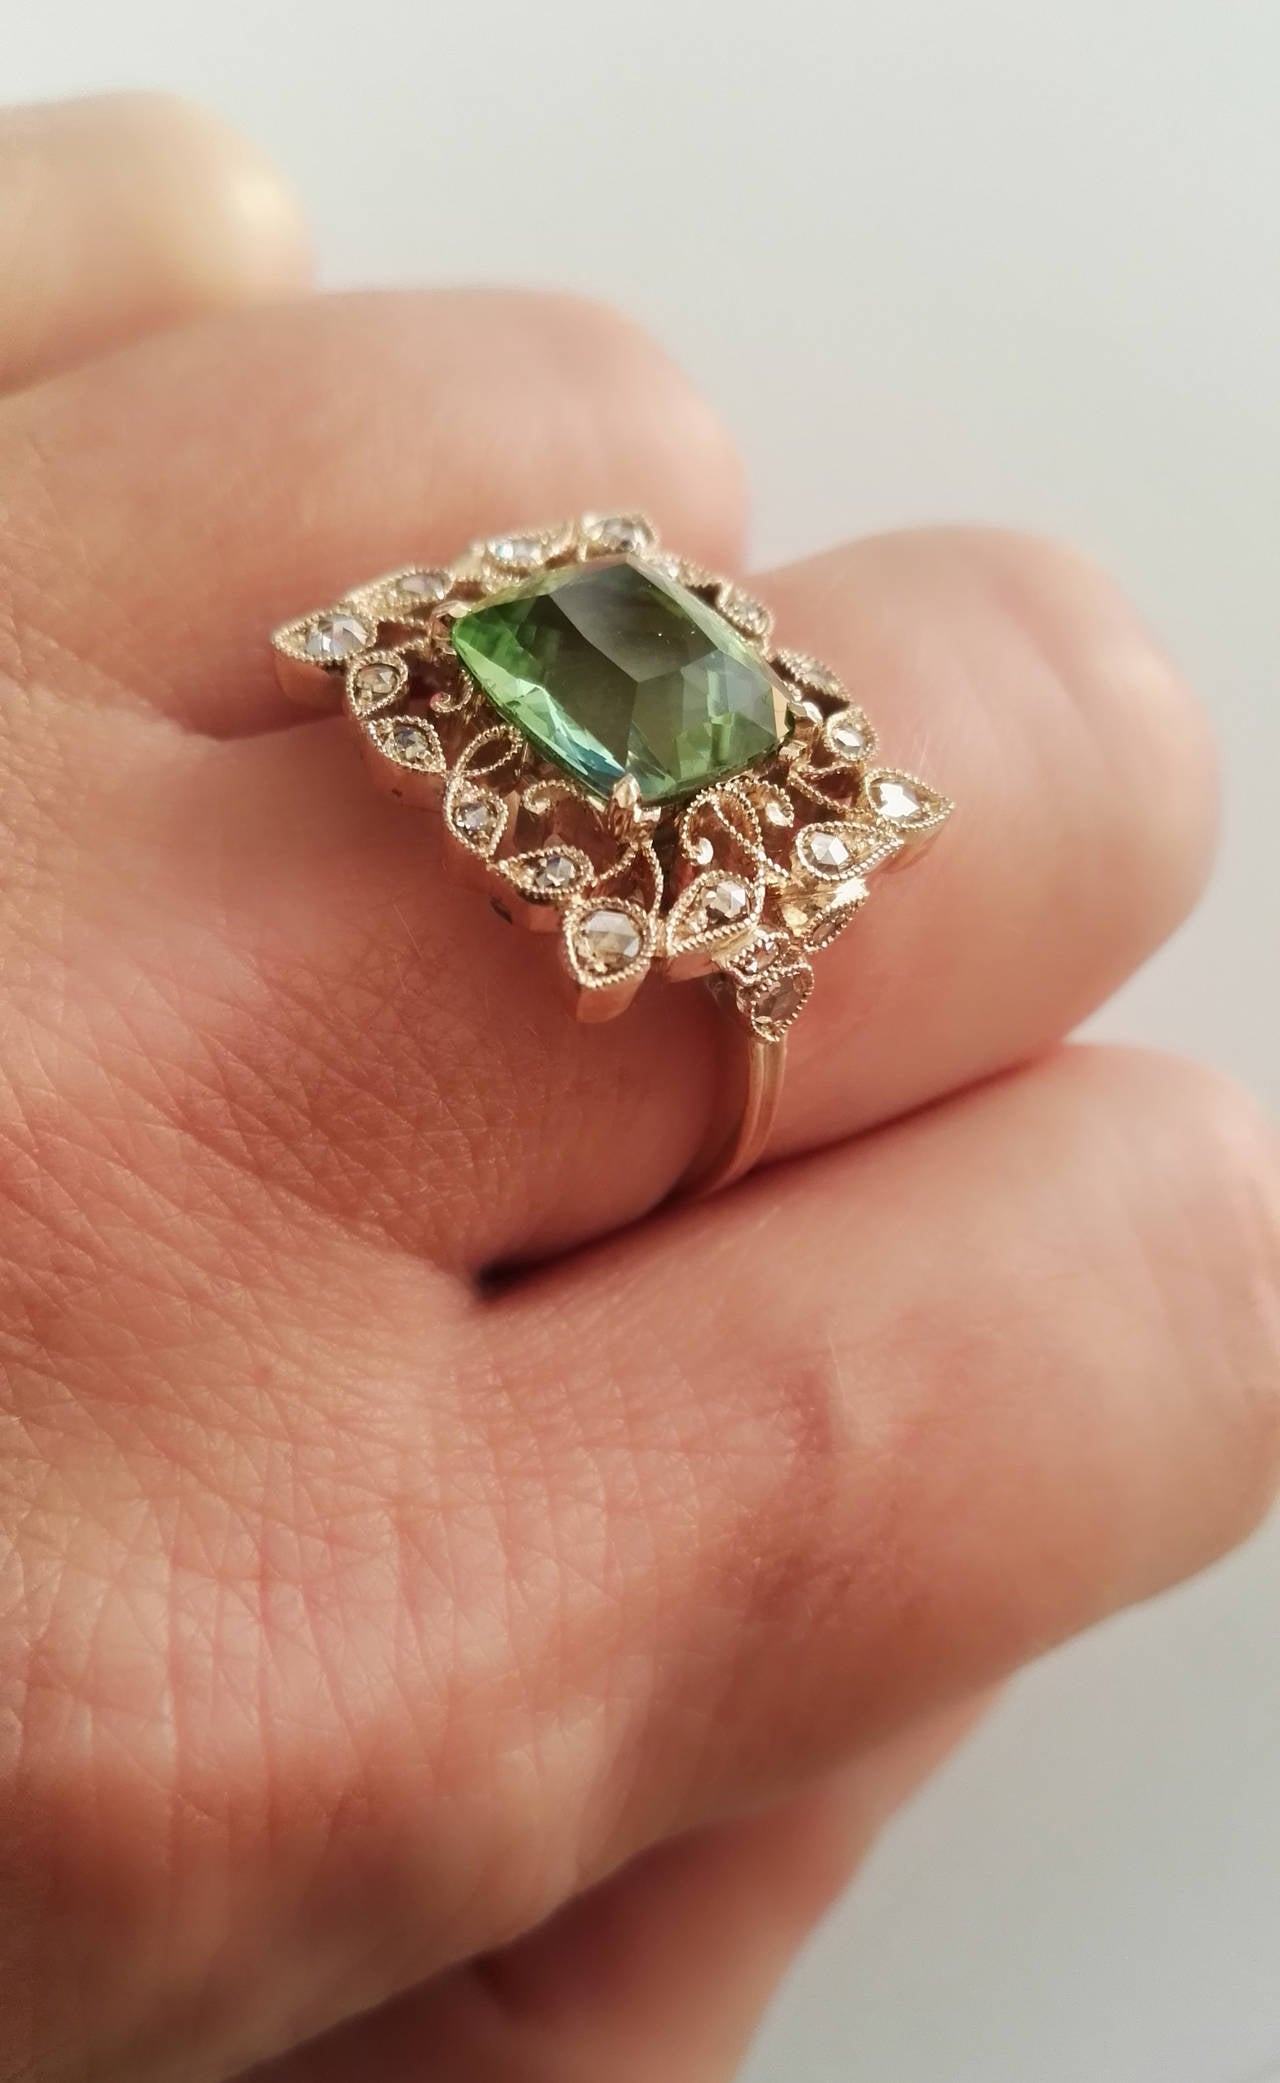 Dalben Green Tourmaline Rose Cut Diamond Gold Fashion Ring For Sale 3